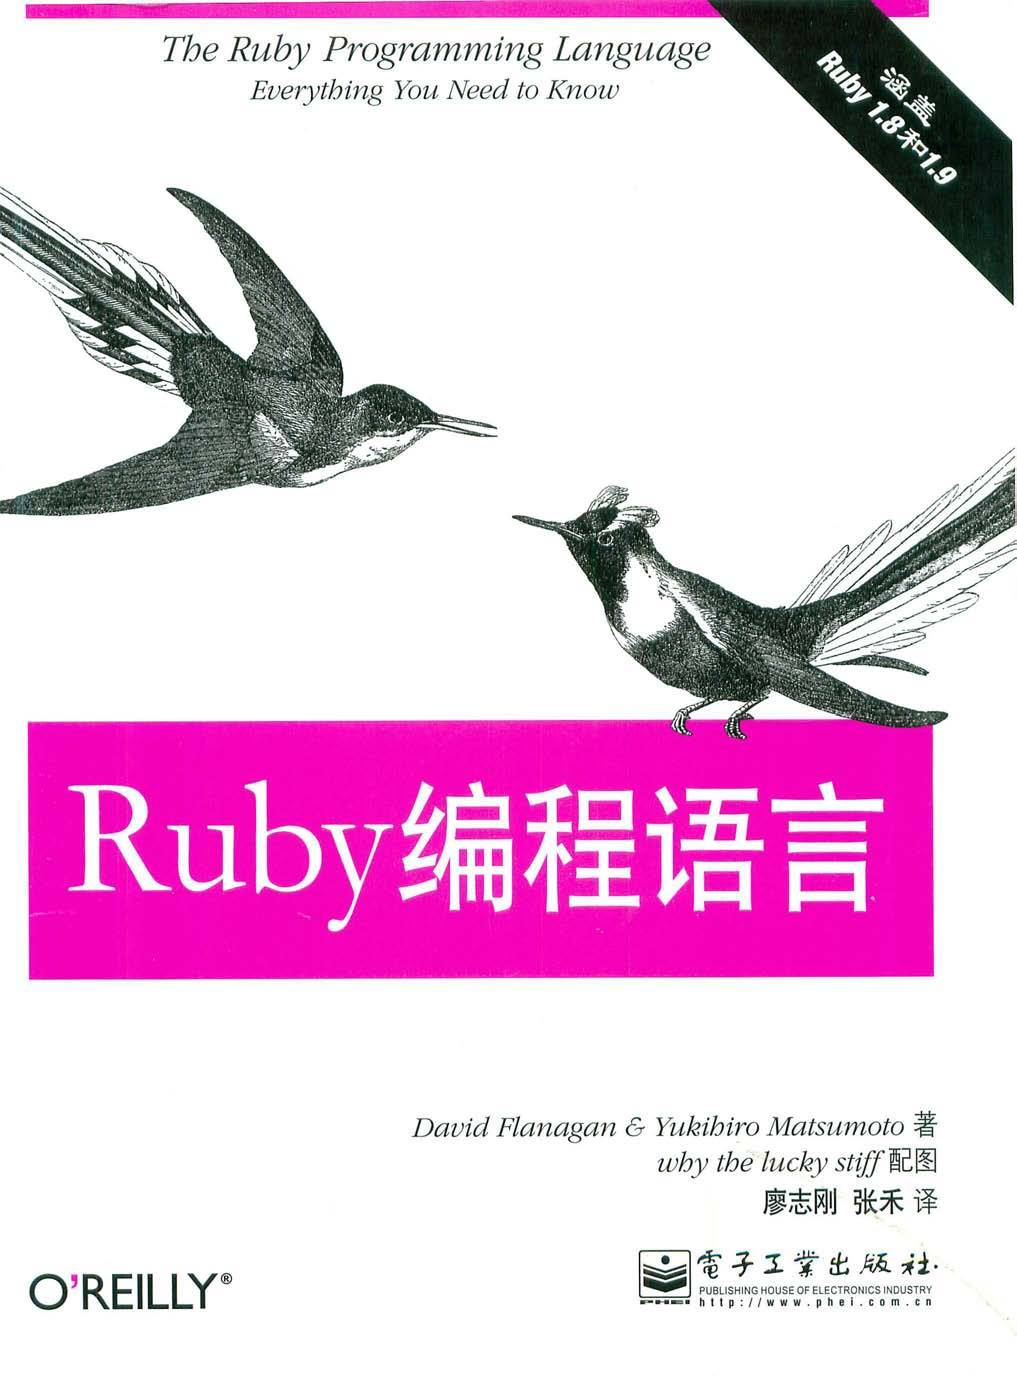 ruby 语言 CommonJS和AMD/CMD